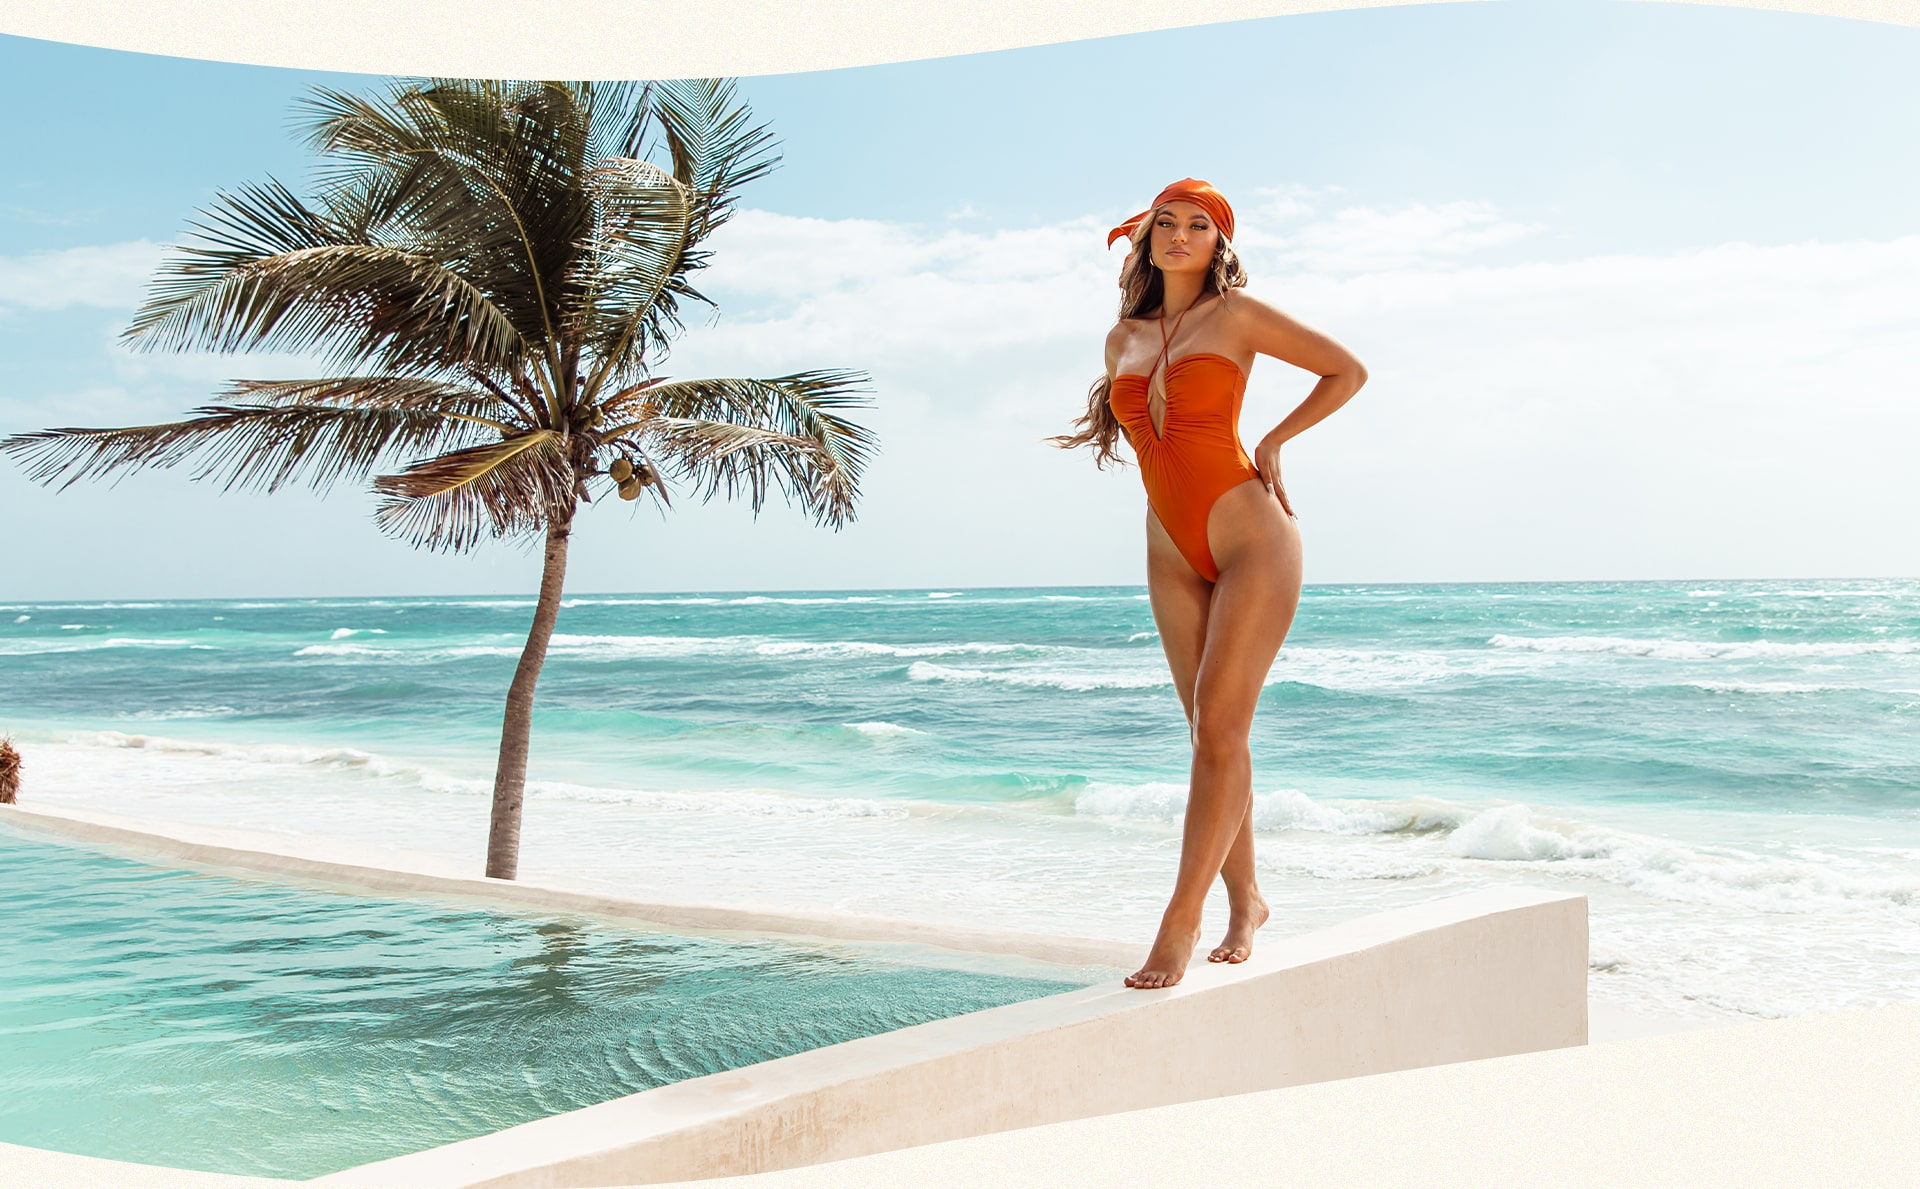 Destination Swim Tulum Lookbook Image Desktop 5